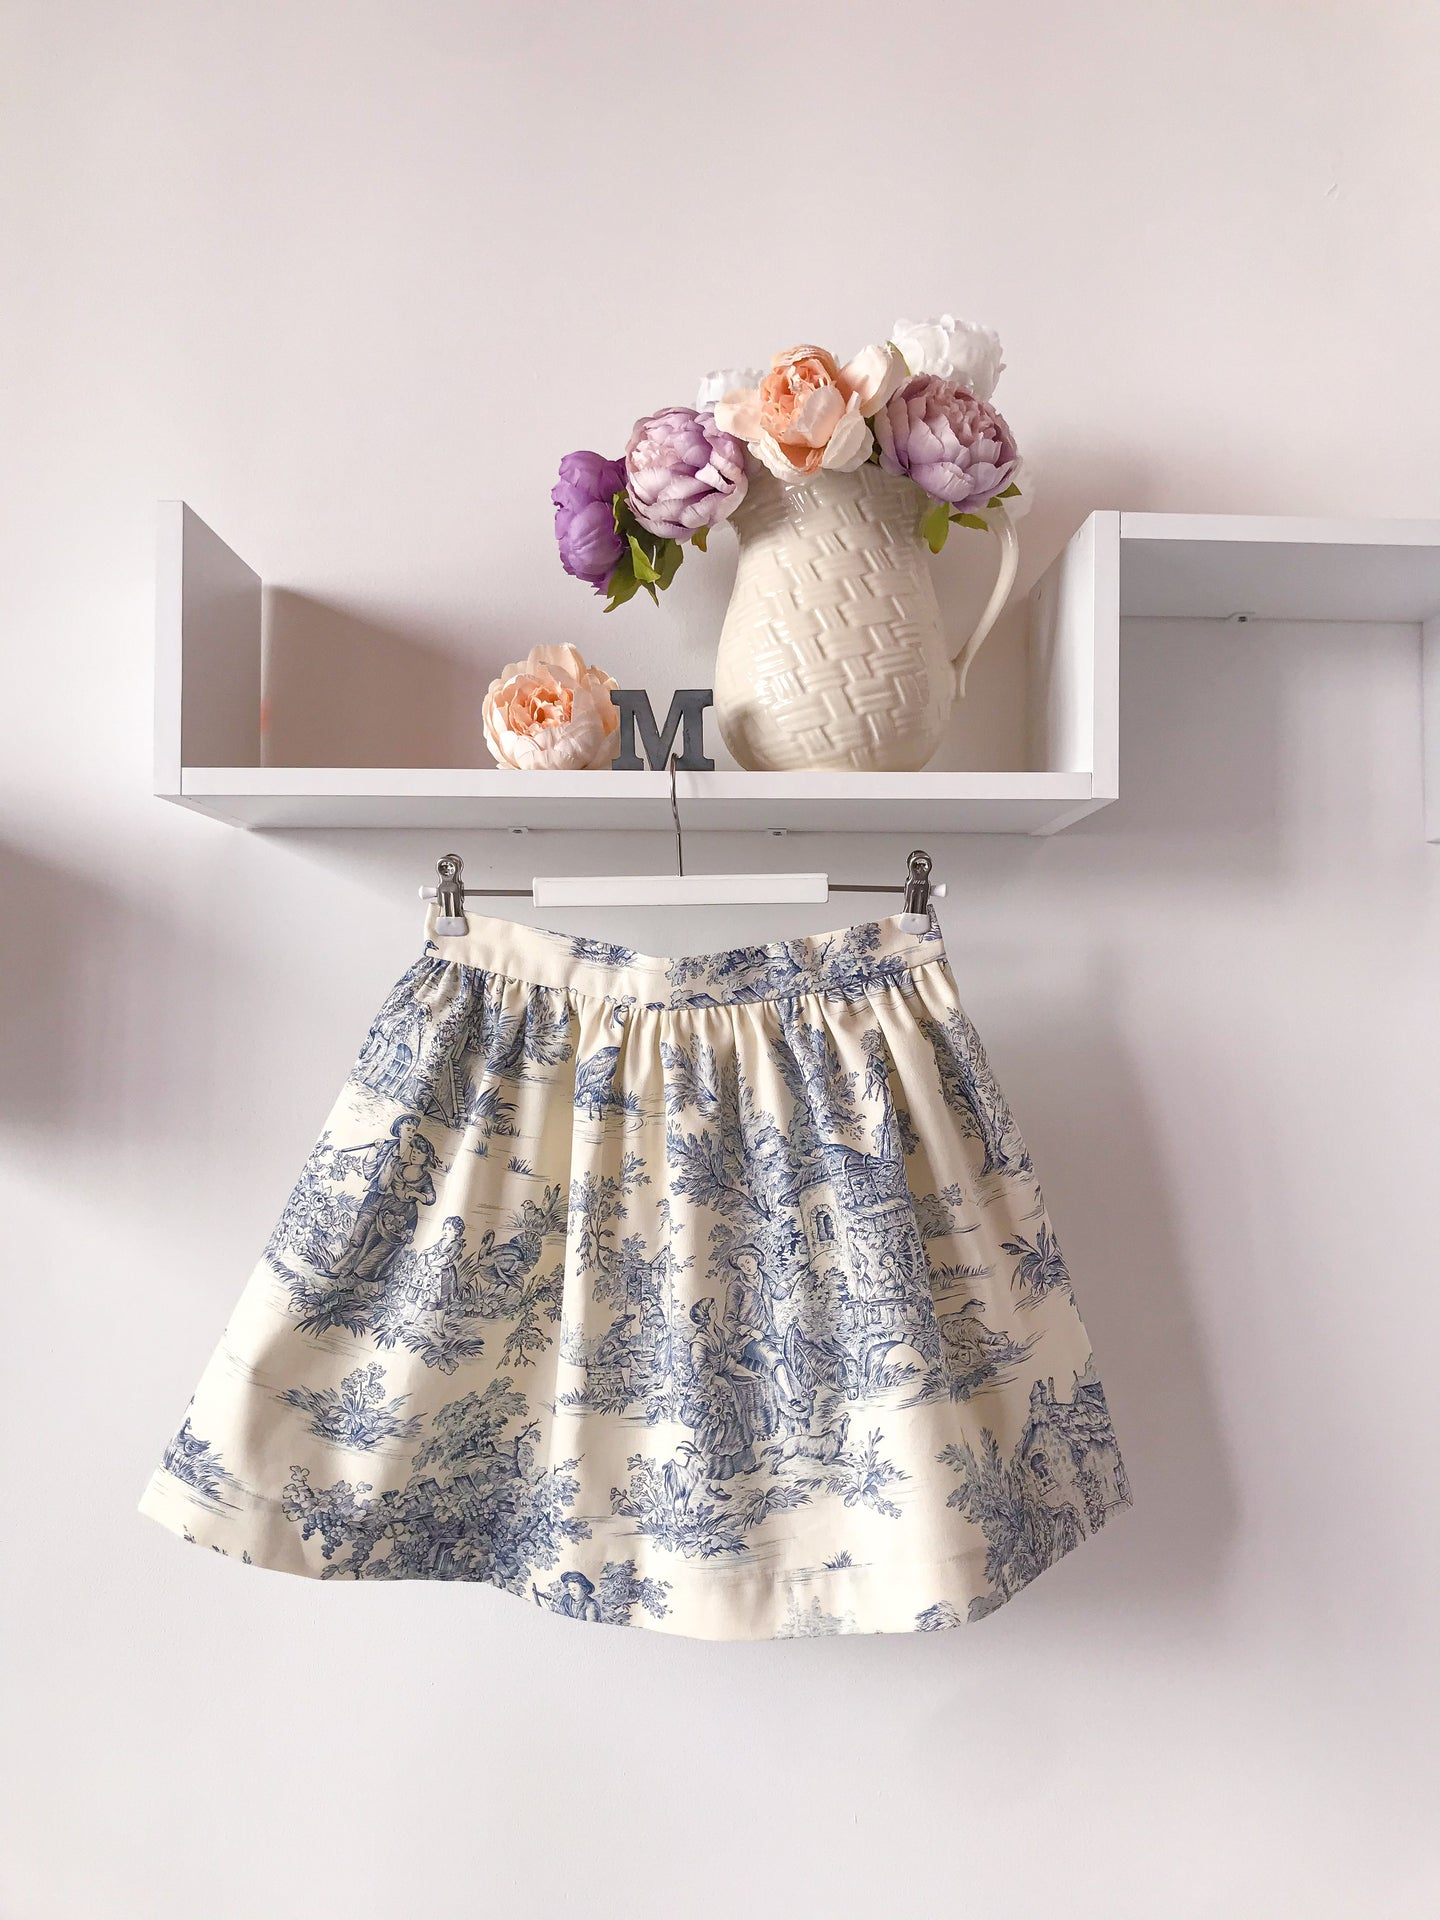 Mini gonna  sartoriale MoodS - Toile de Jouy azzurro - Disponibile su ORDINAZIONE